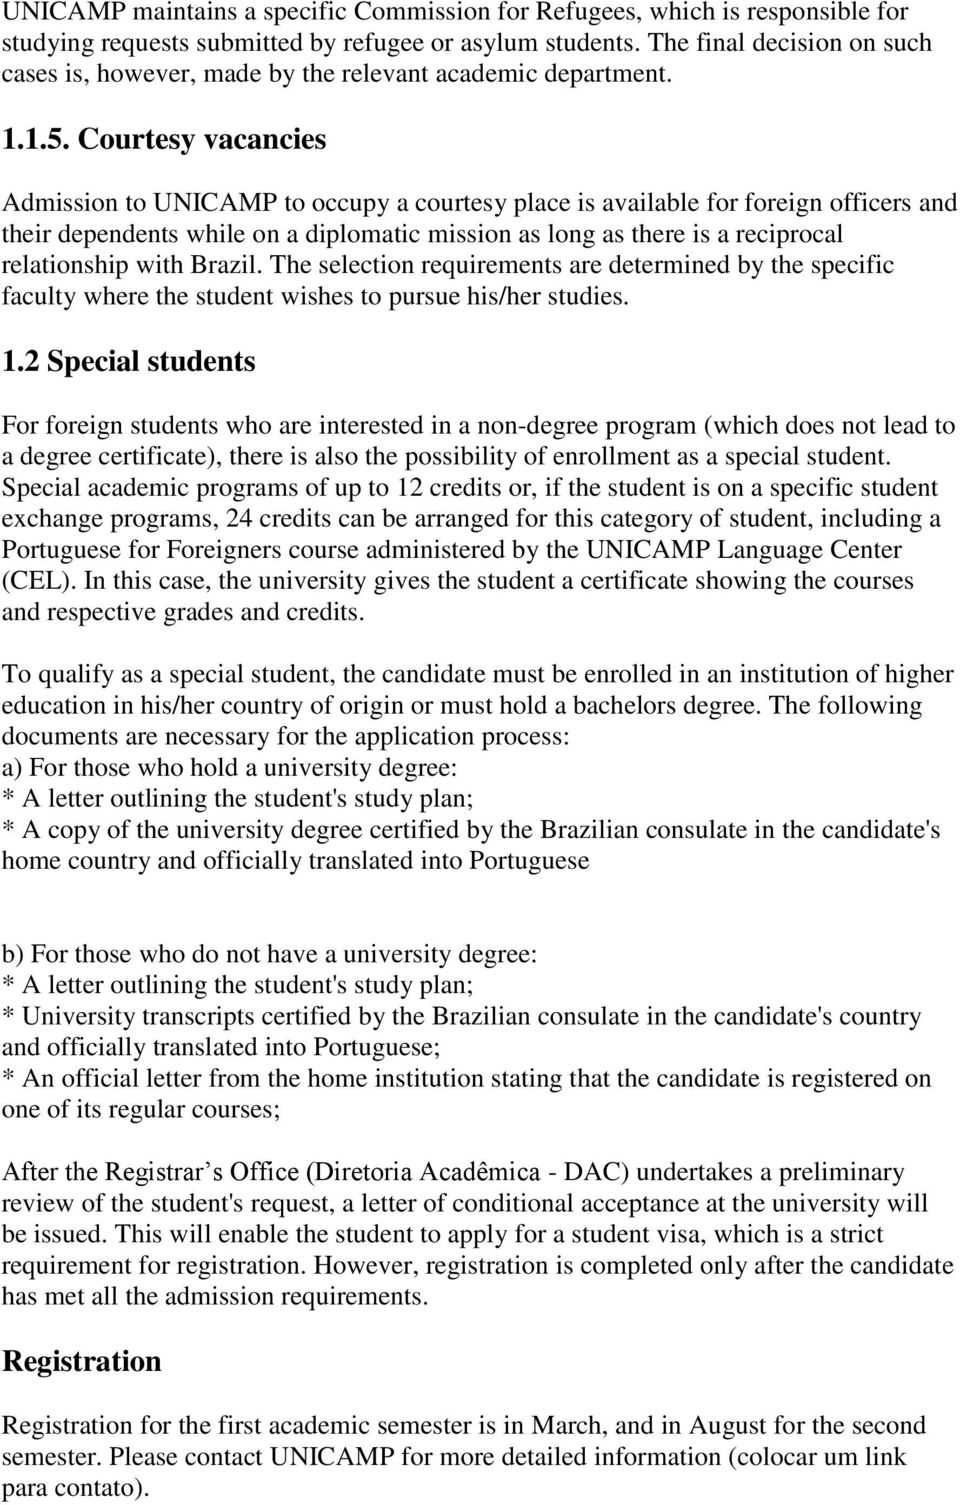 Courtesy vacancies Admission to UNICAMP to occupy a courtesy place is available for foreign officers and their dependents while on a diplomatic mission as long as there is a reciprocal relationship